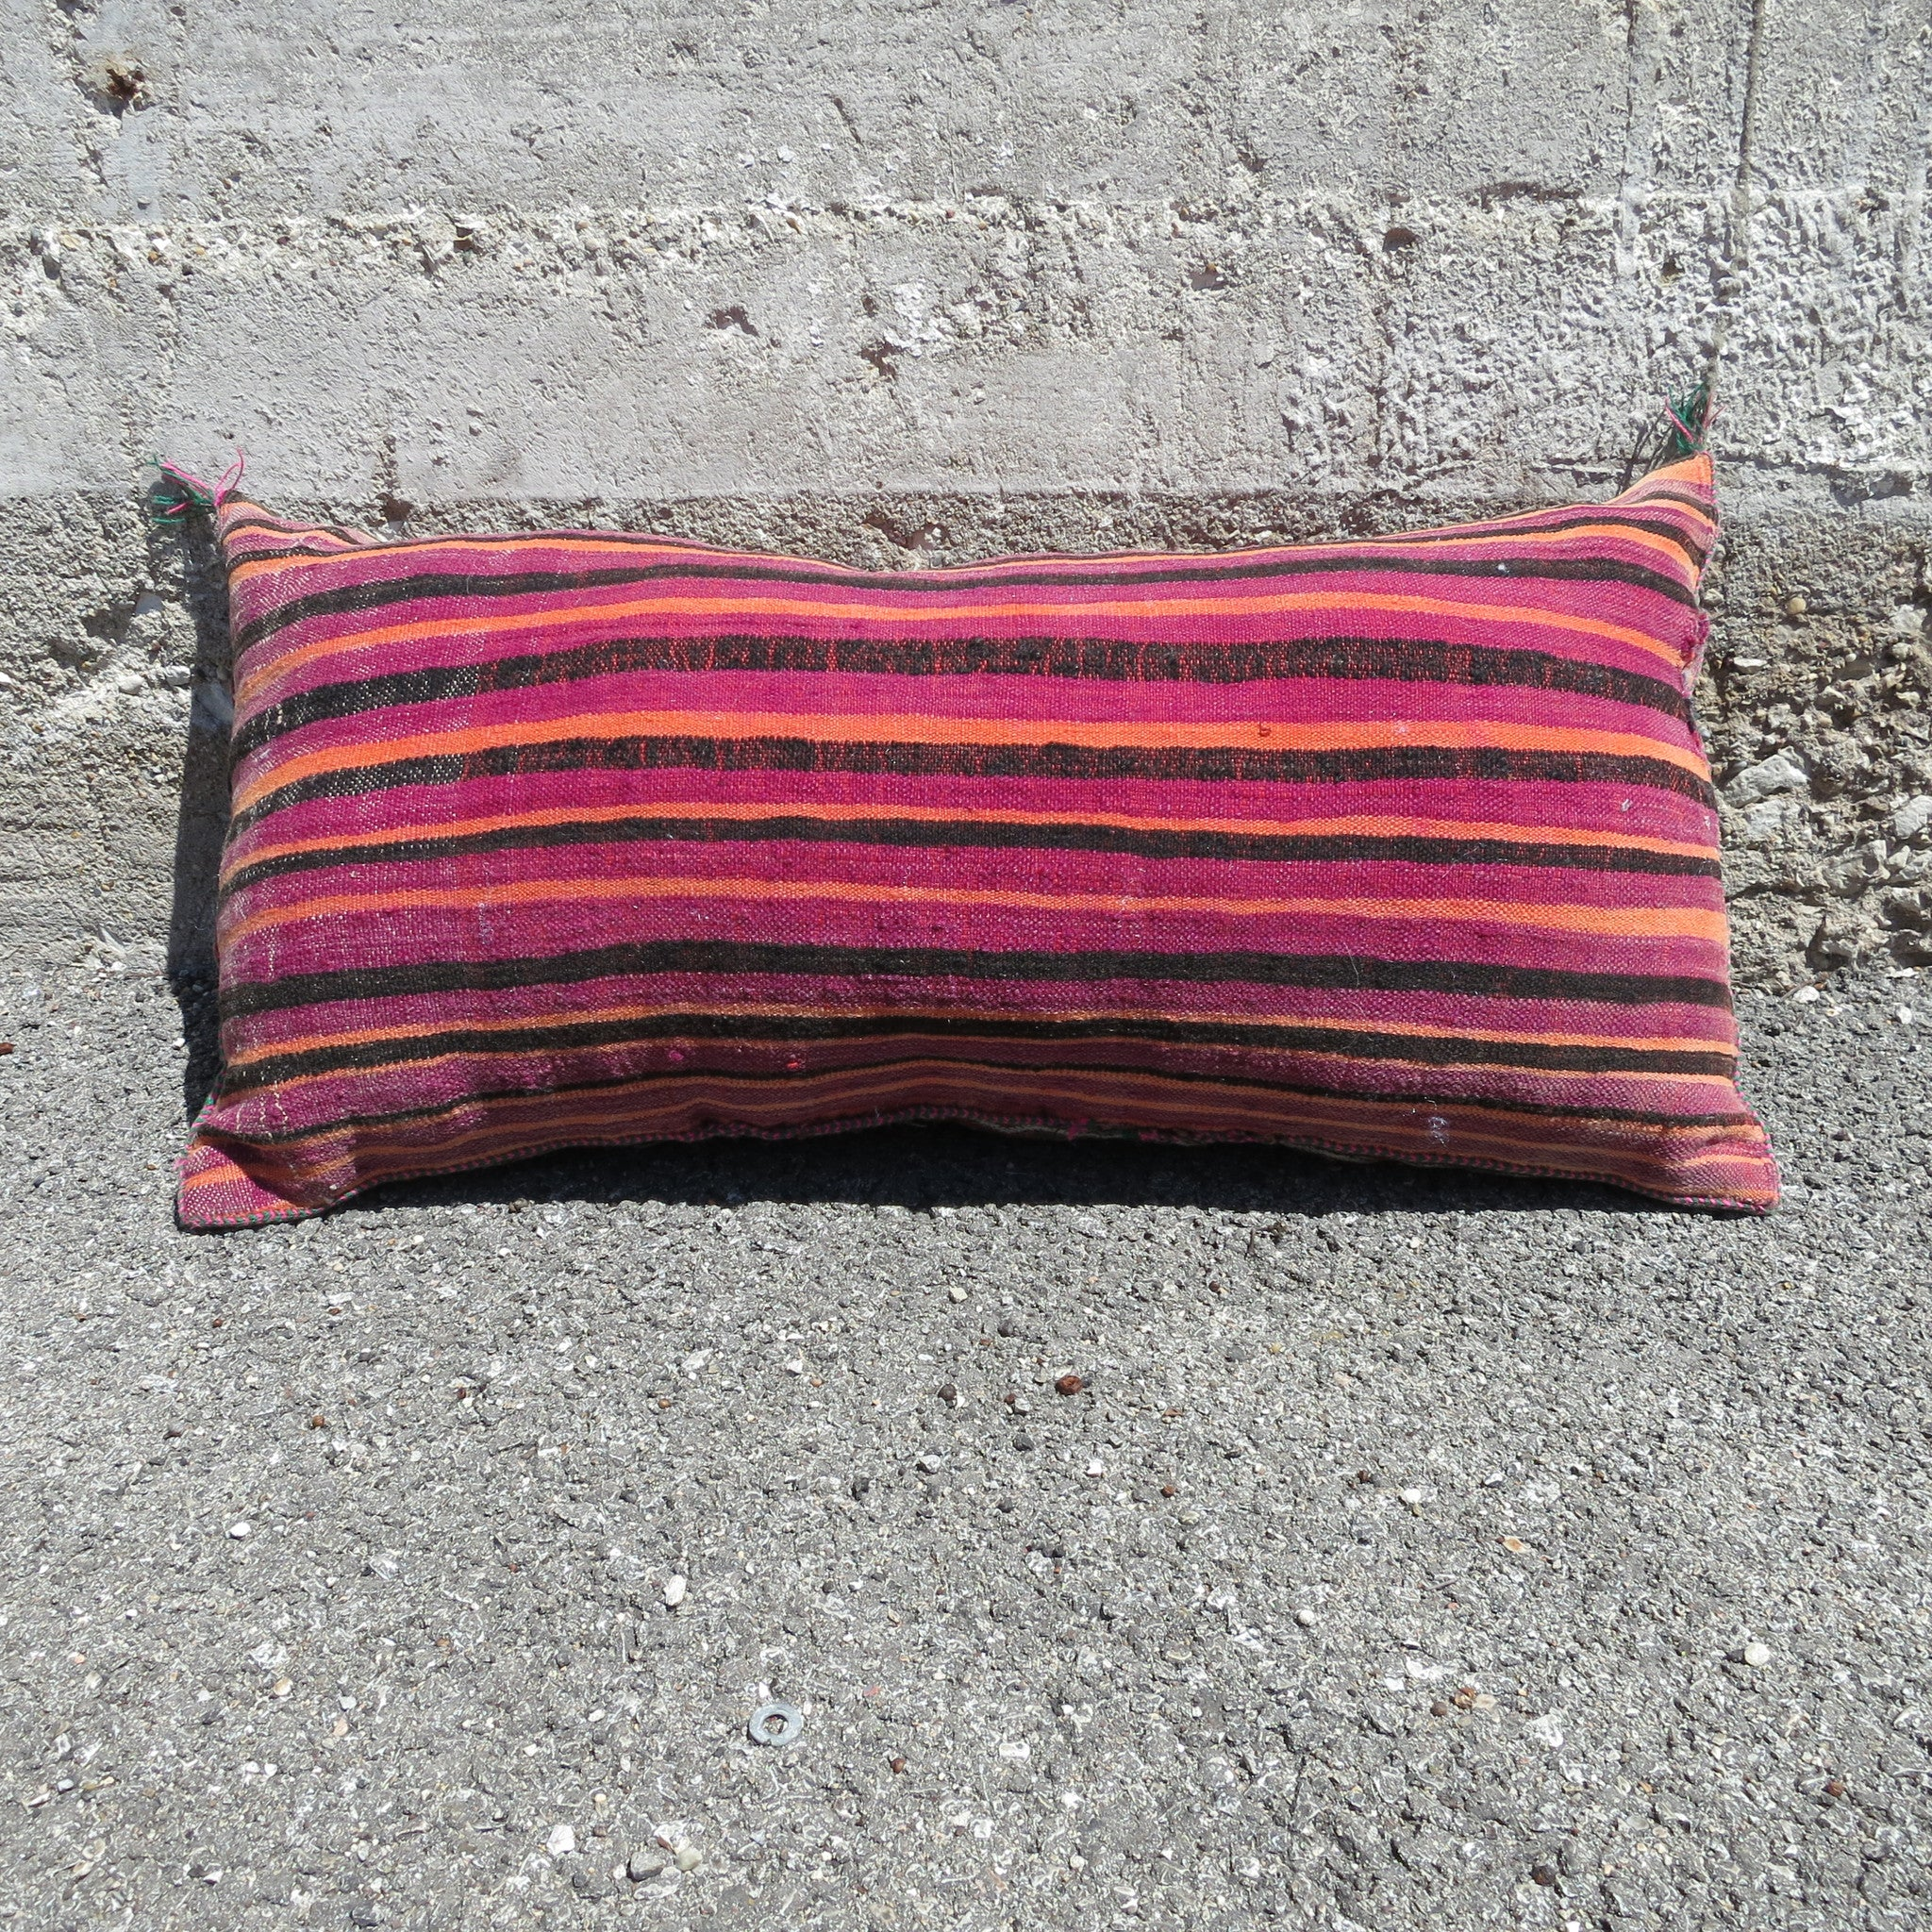 'PINKBERRY' BERBER WOOL PILLOW